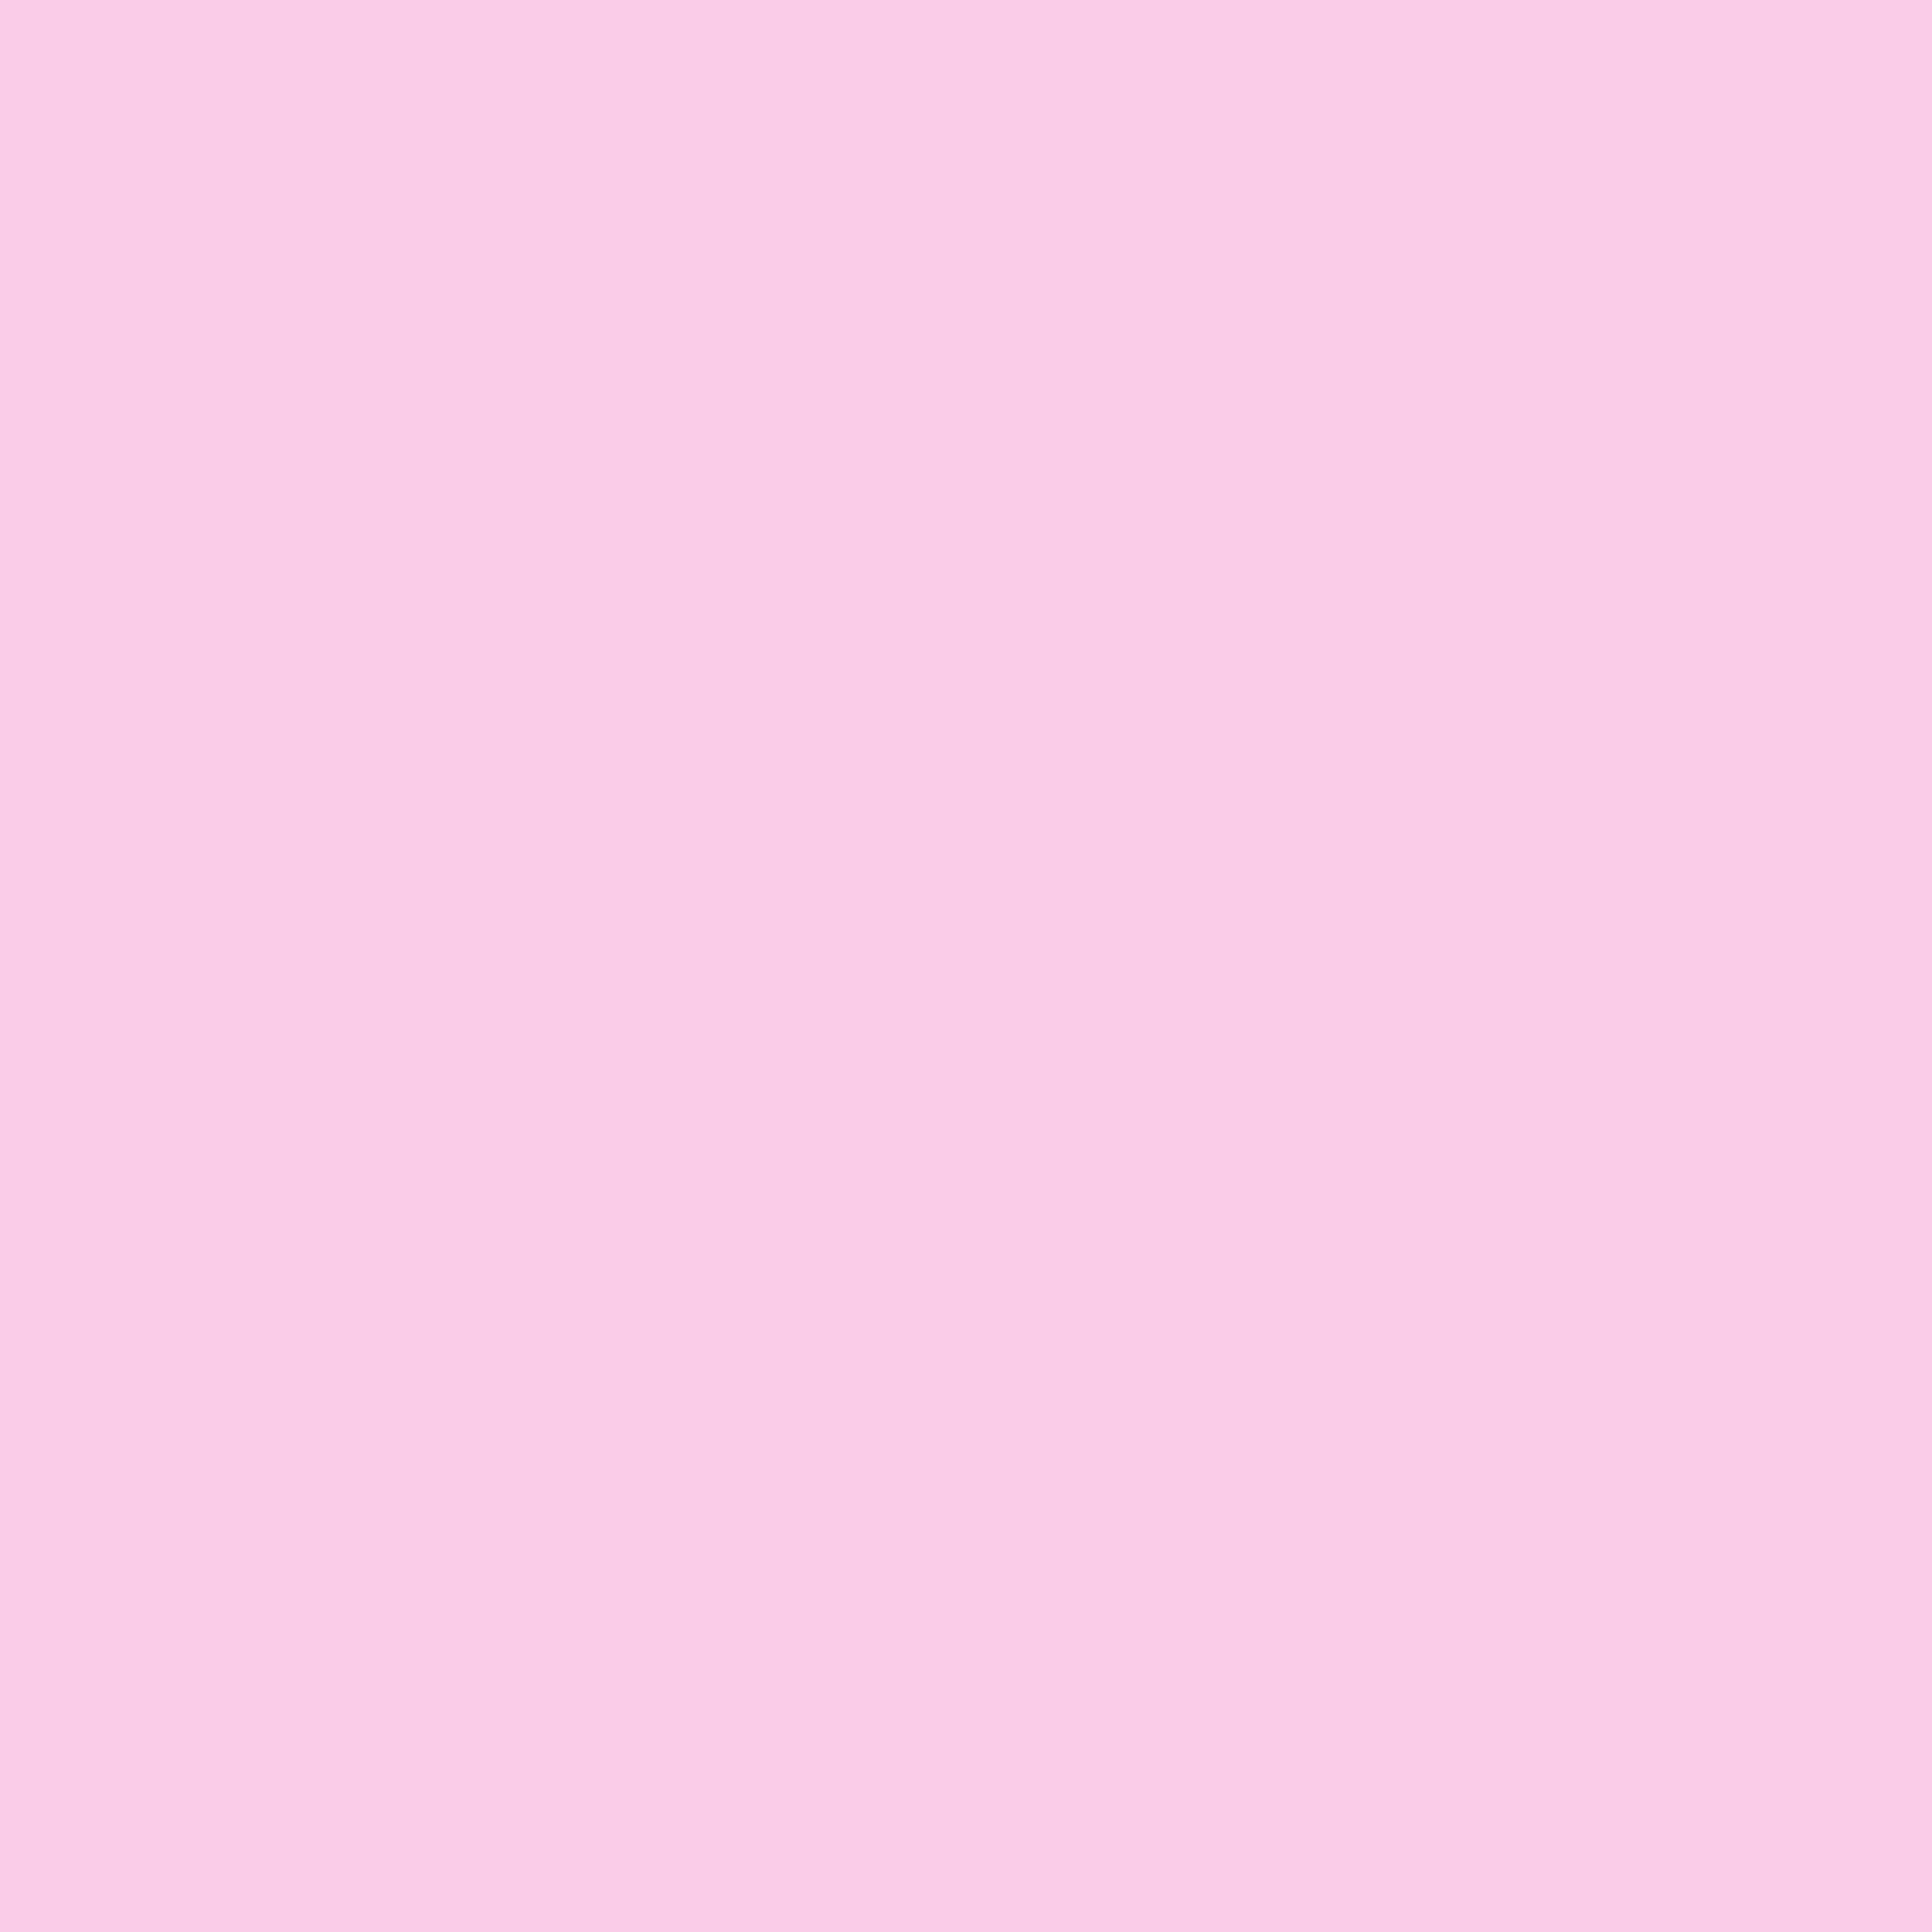 2732x2732 Classic Rose Solid Color Background